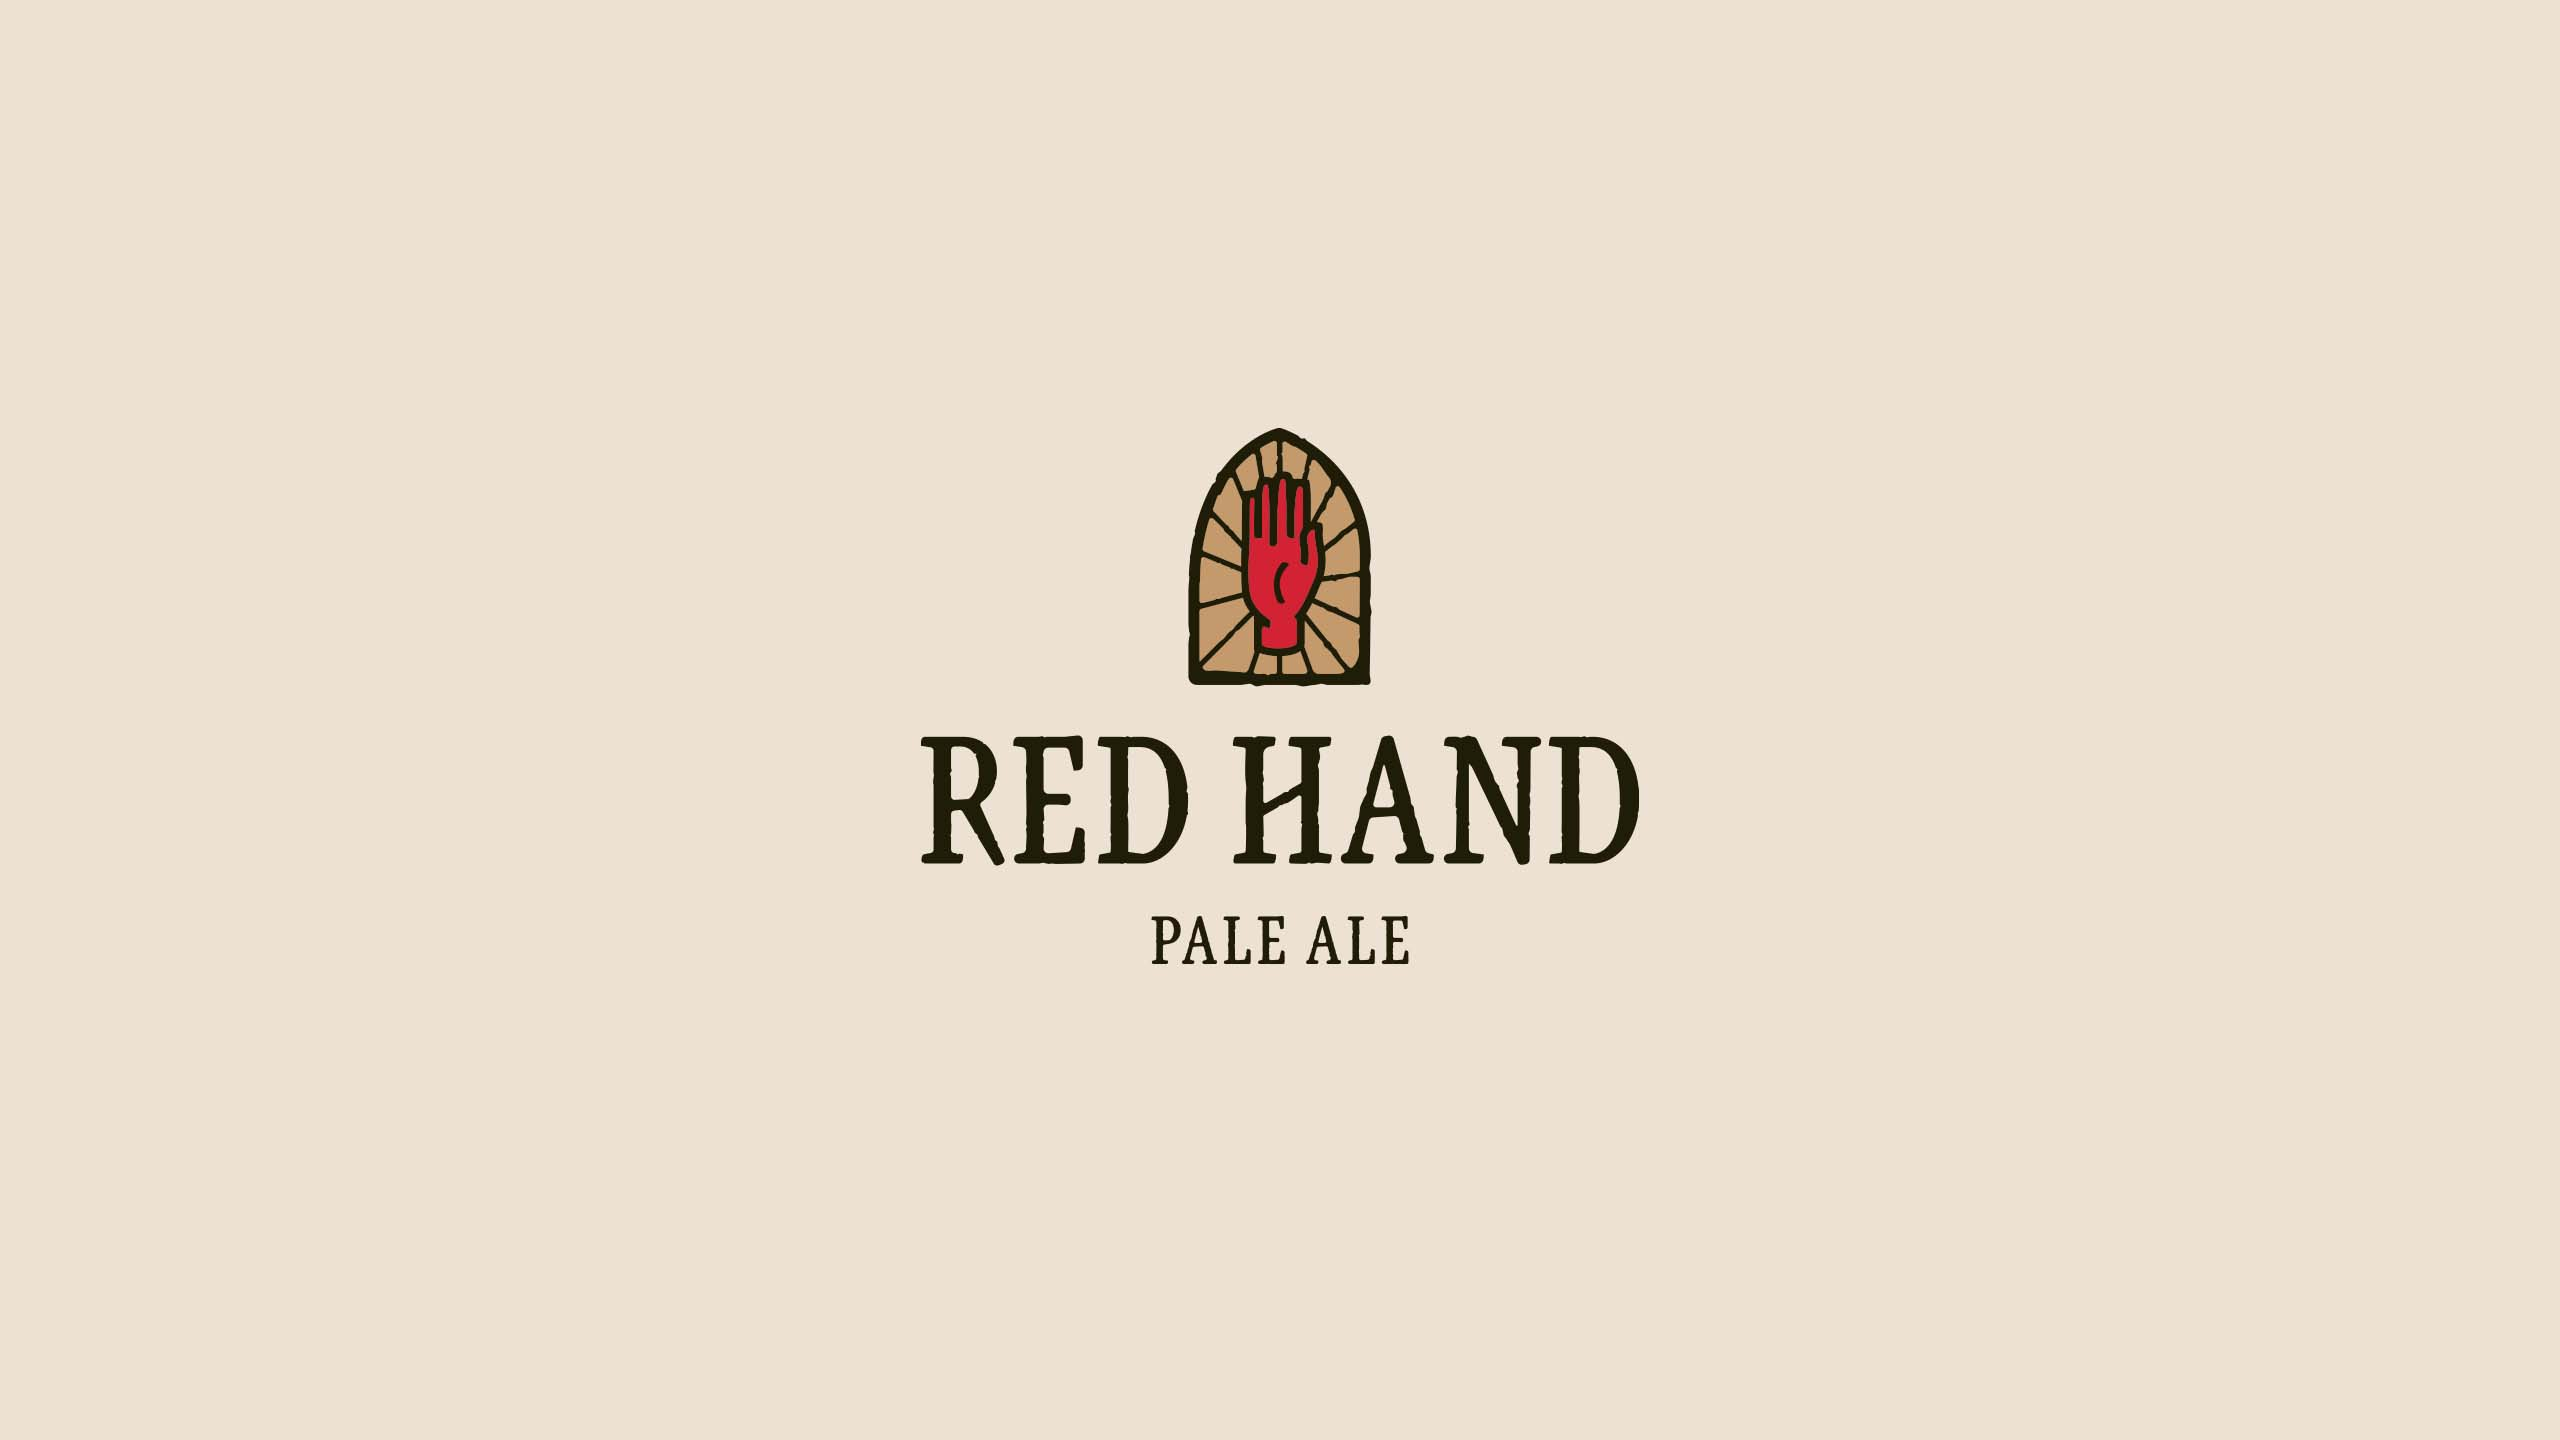 red-hand-pale-ale-cover-logotype-2560×1440-1